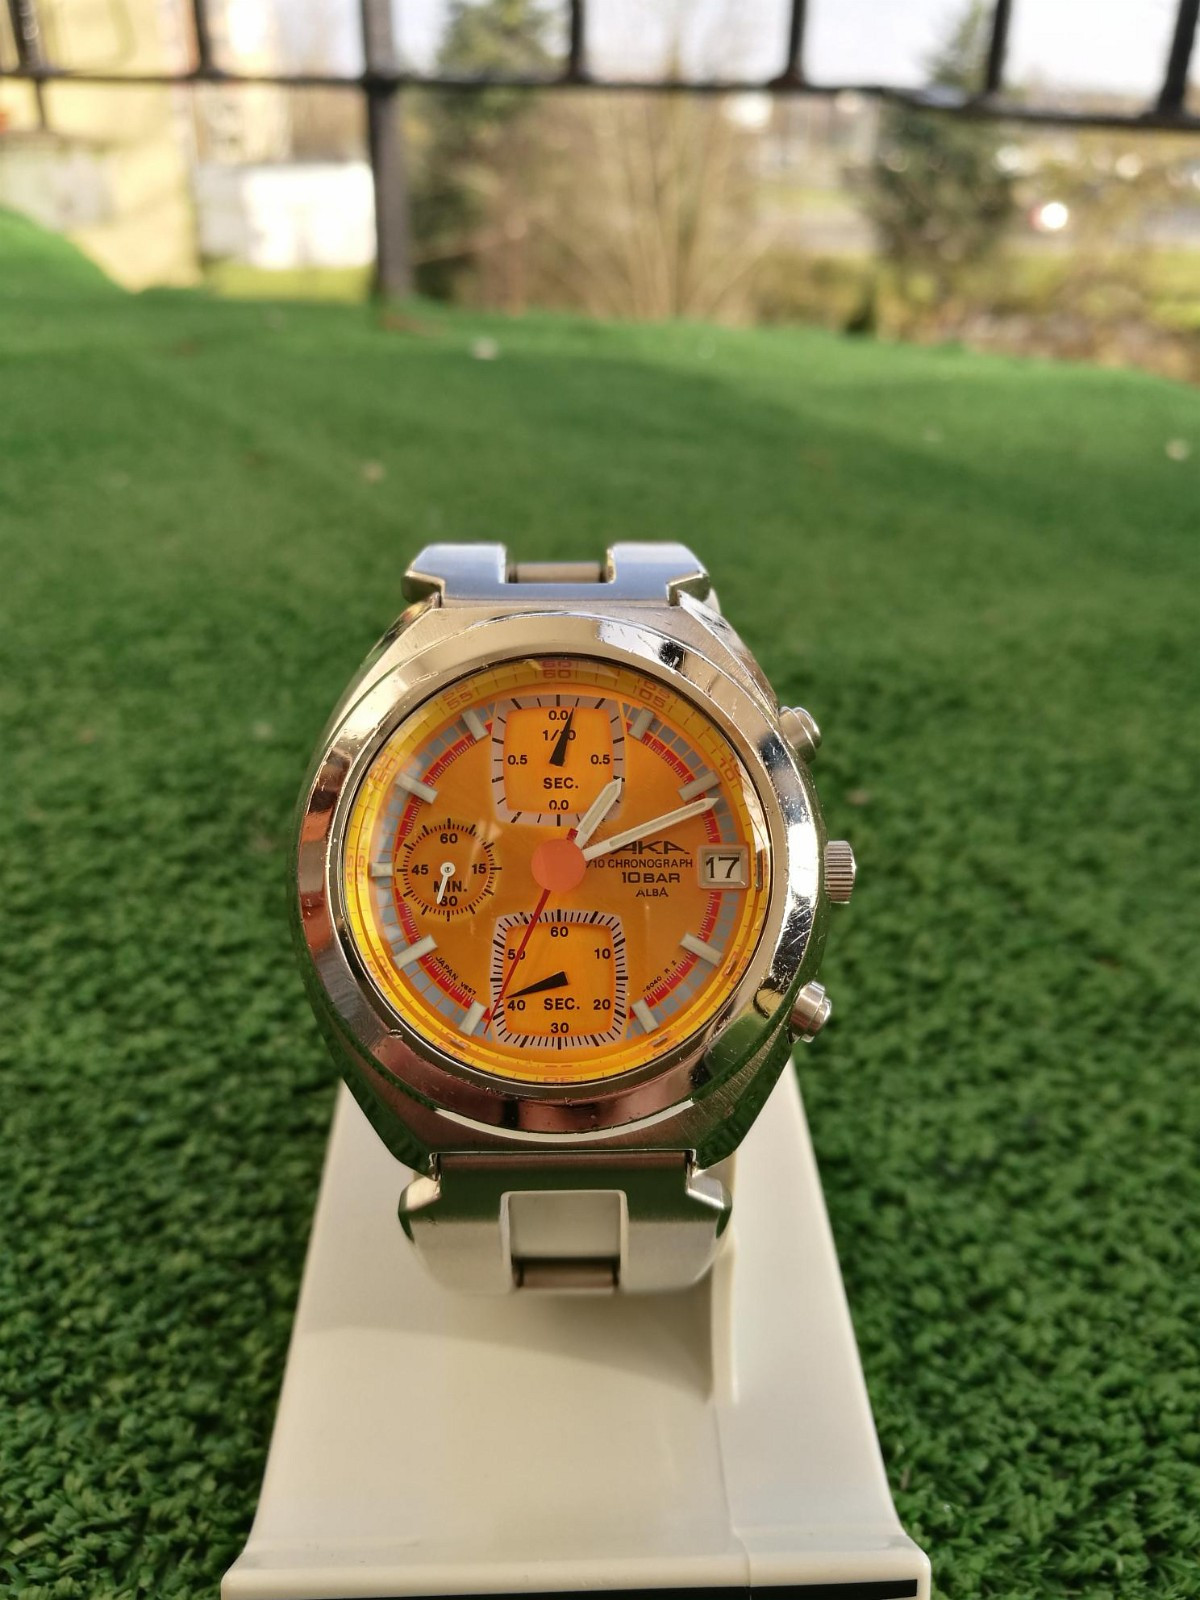 Rare vintage (Seiko) AKA ALBA Chronograph V657-6060 - Kristiansand S  - Rare vintage (Seiko) AKA ALBA Chronograph V657-6060 quartz with the beutiful yellow dial. Watch in good condition, everything works good. Diameter without crown 39mm. Oryginal branclet.   Red and Yellow dial being the most vibrant of the - Kristiansand S